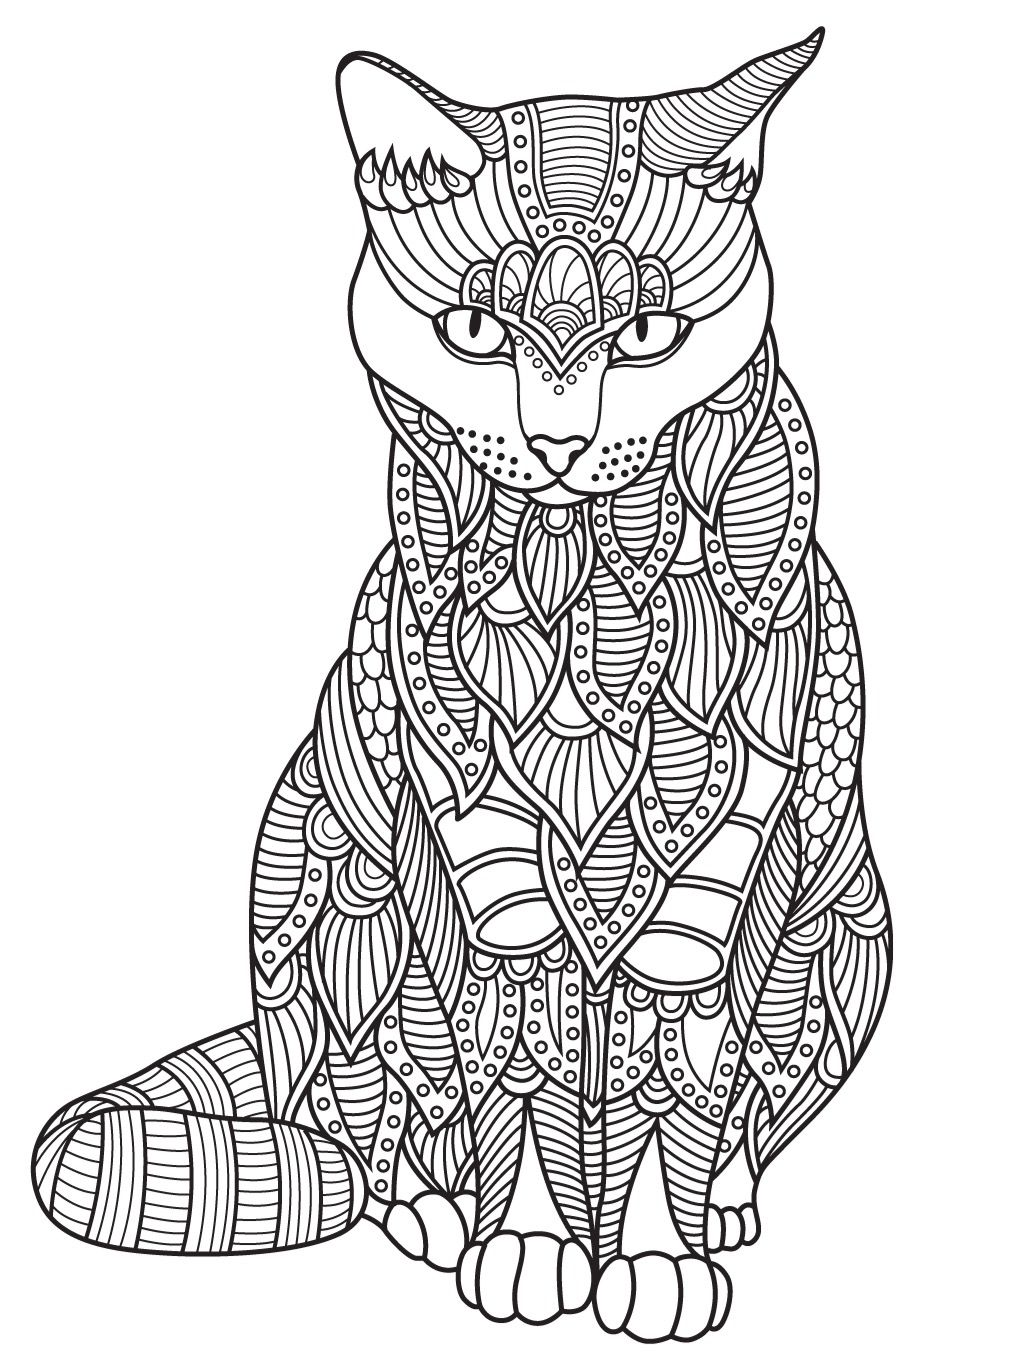 Cats To Color Colorish Free Coloring App For Adults By Goodsofttech Cat Coloring Page Kitty Coloring Animal Coloring Pages